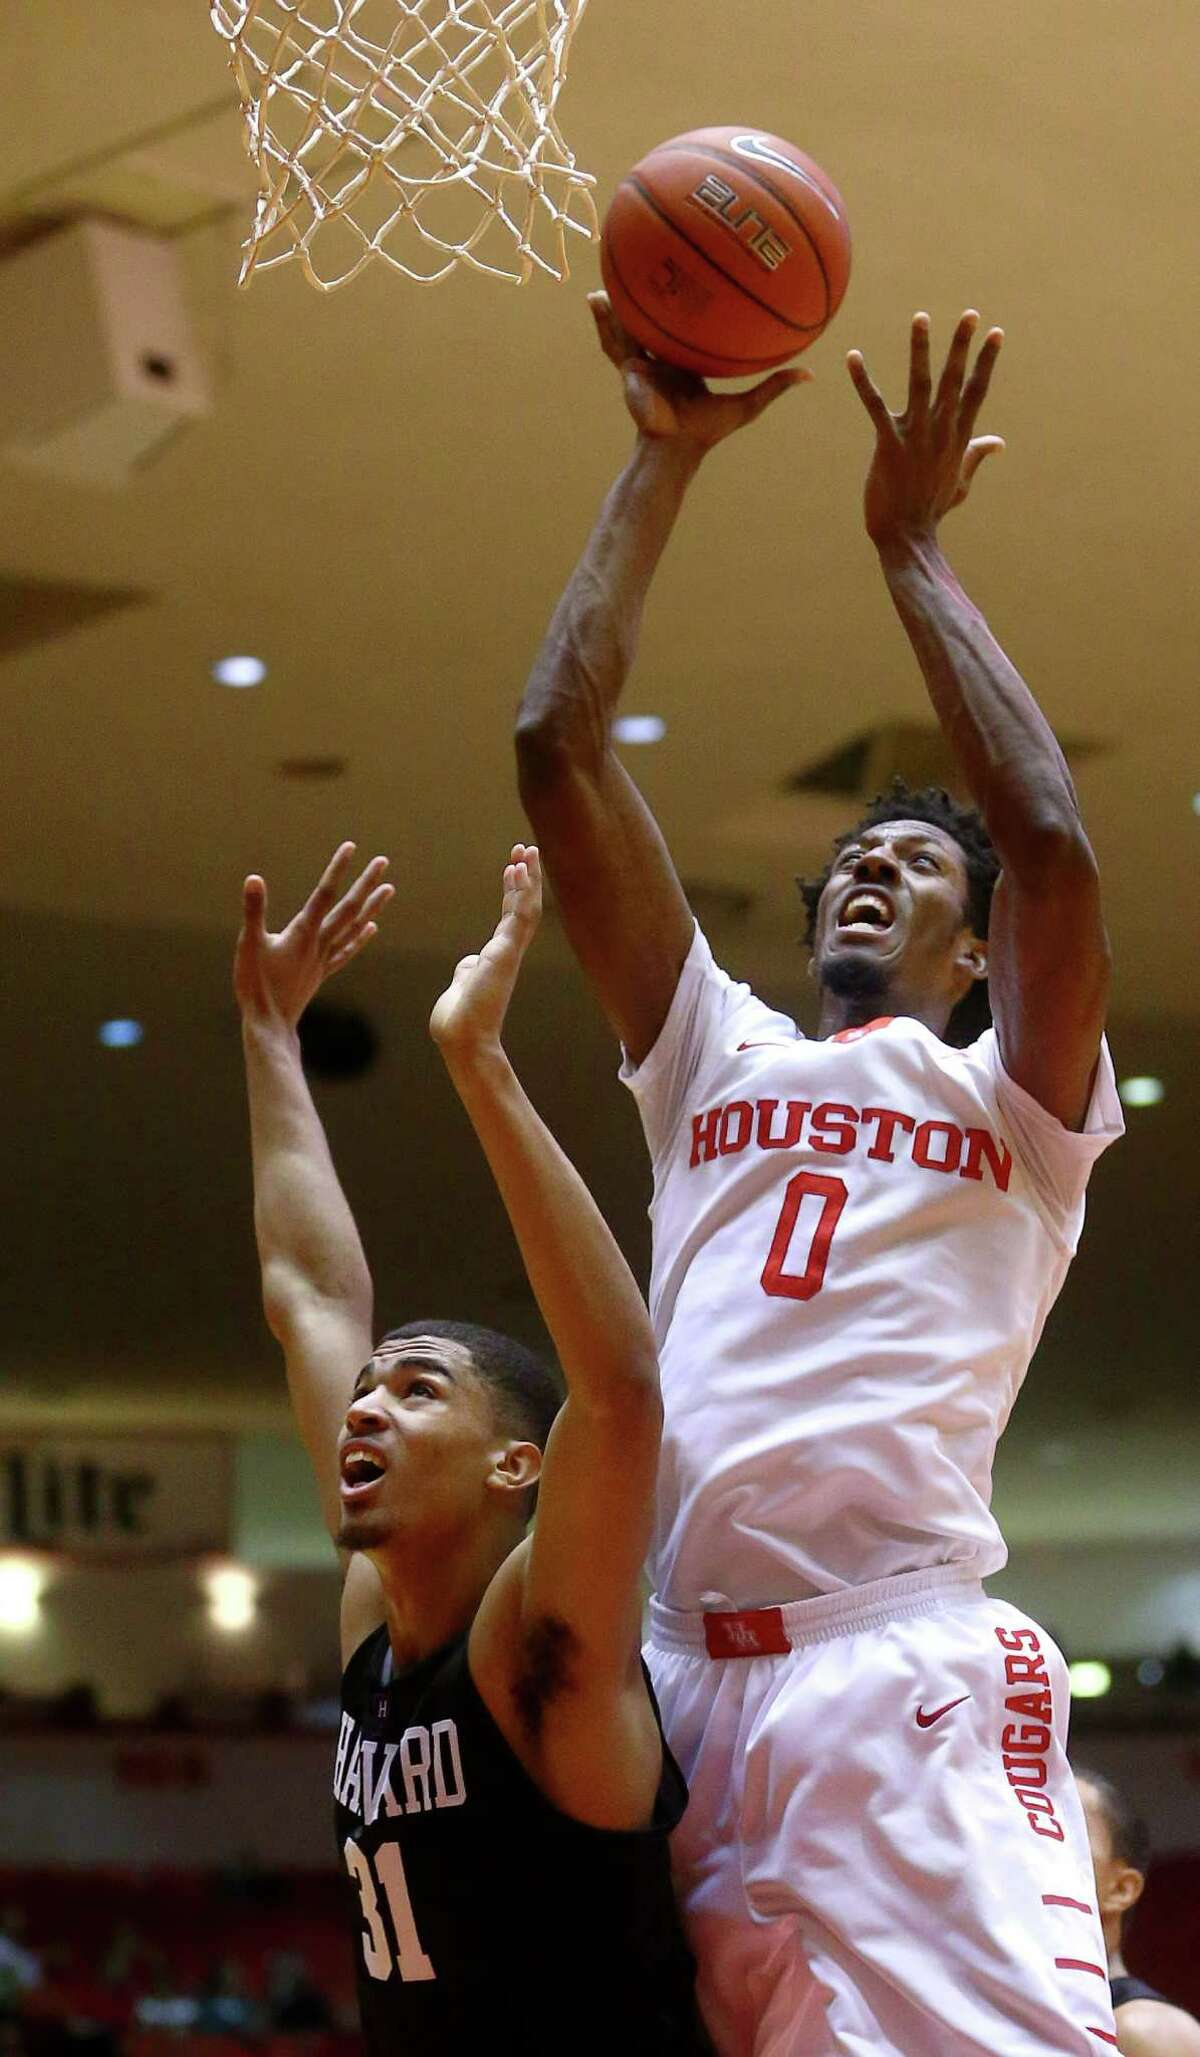 Houston forward Danrad Knowles scored 10 points in the Cougars win over UConn on Wednesday.